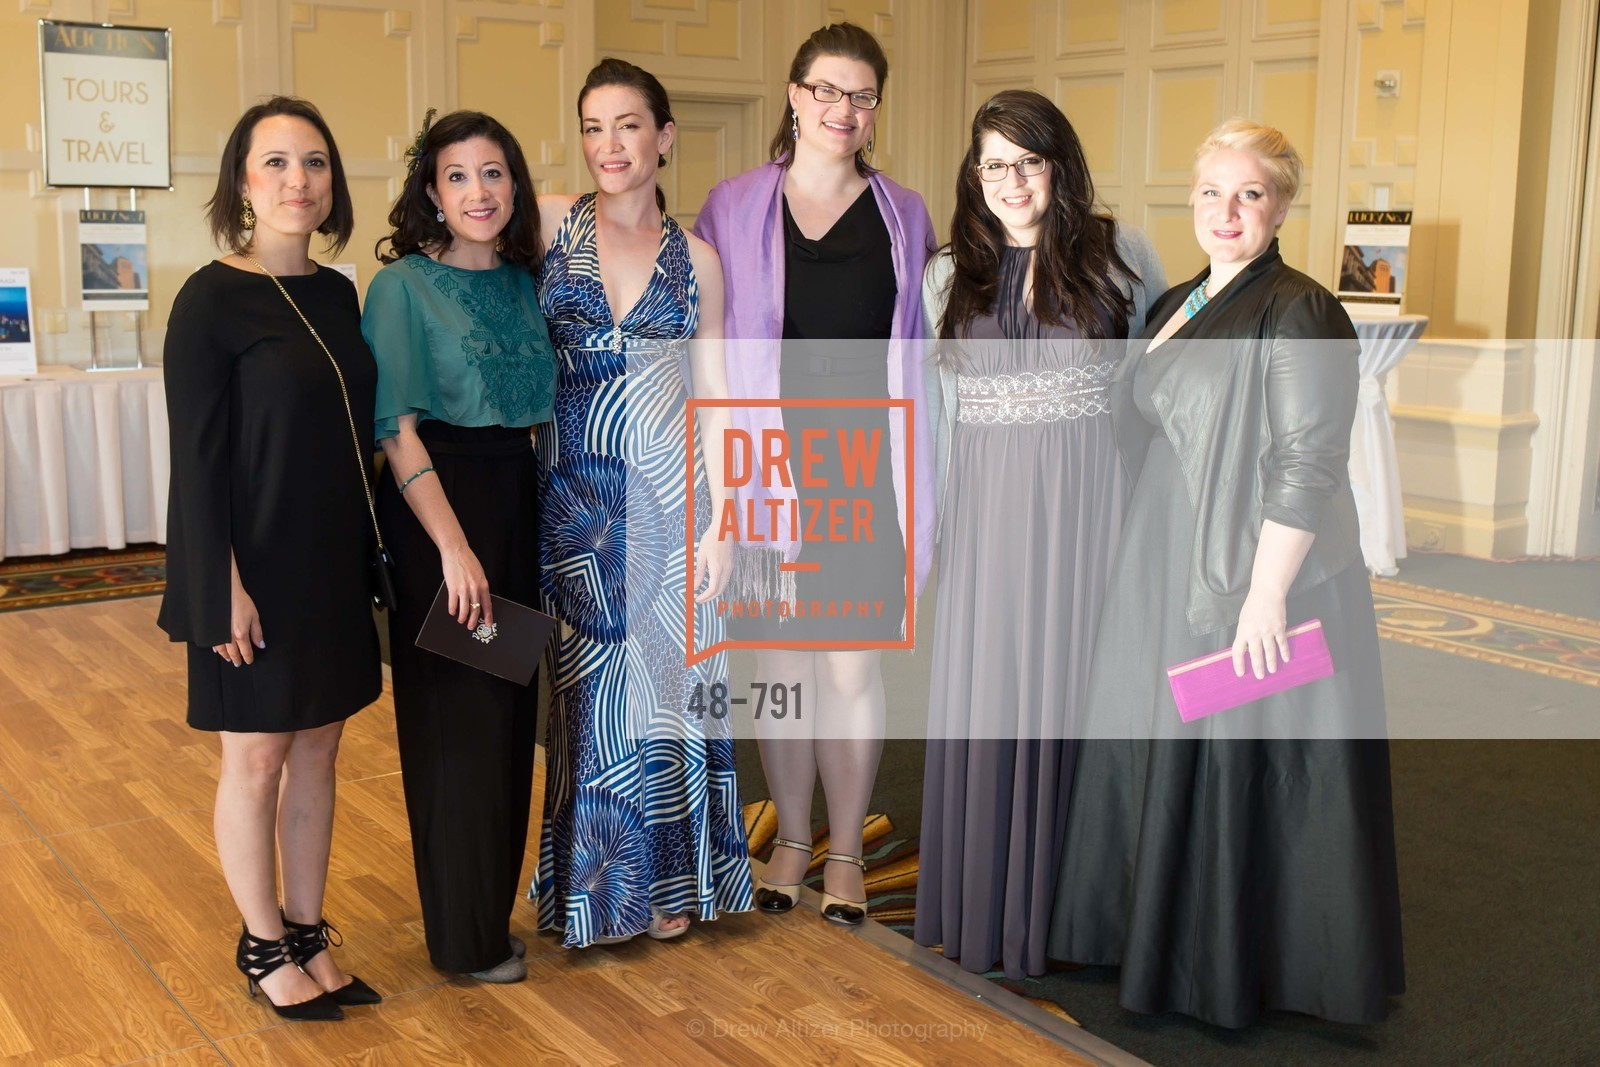 Laura Pallin, Eiliesh Tuffy, Aisha Fike, Gretchen Hilyard, Susan Parks, Melissa Williams, SAN FRANCISCO HERITAGE Soiree 2015, US, April 19th, 2015,Drew Altizer, Drew Altizer Photography, full-service agency, private events, San Francisco photographer, photographer california